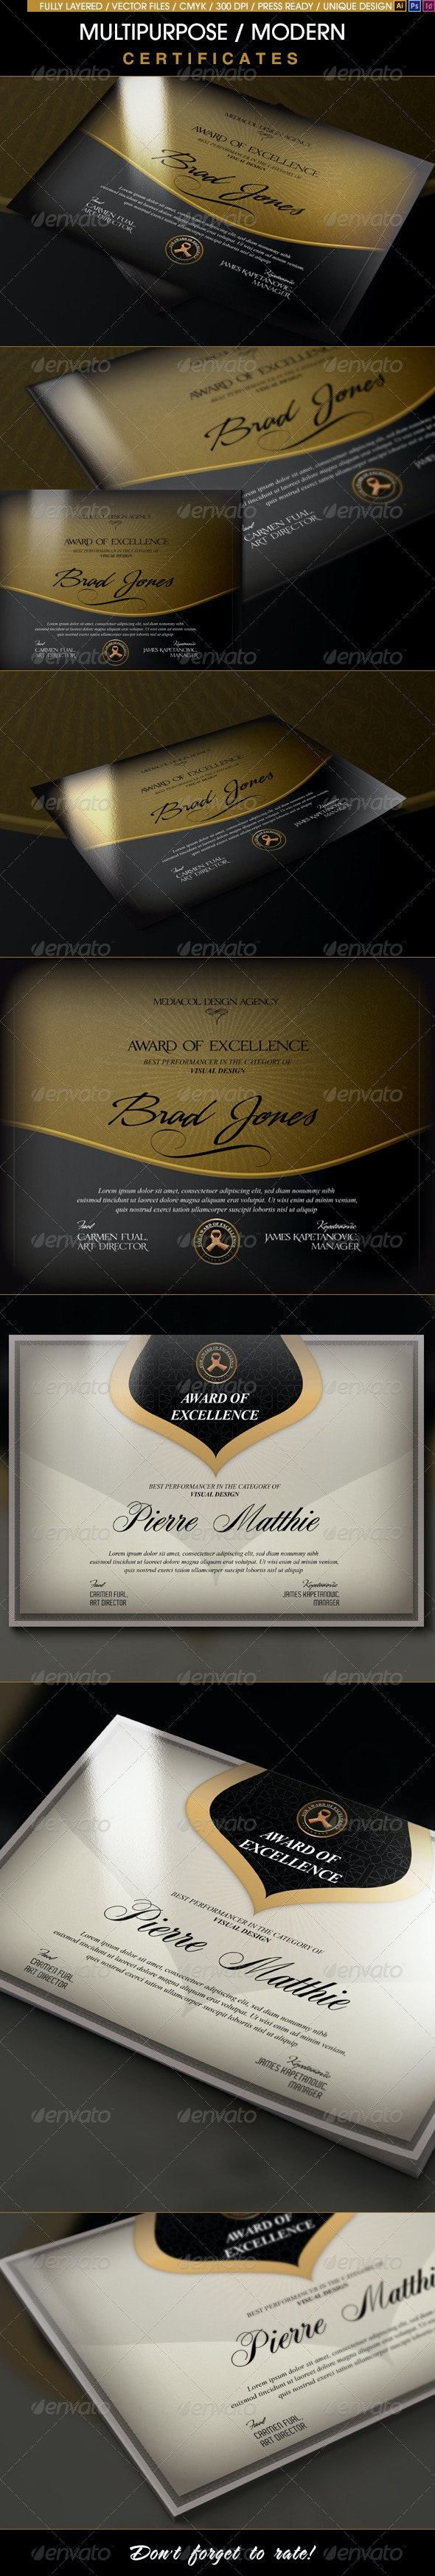 Multipurpose Modern Certificates - Certificates Stationery